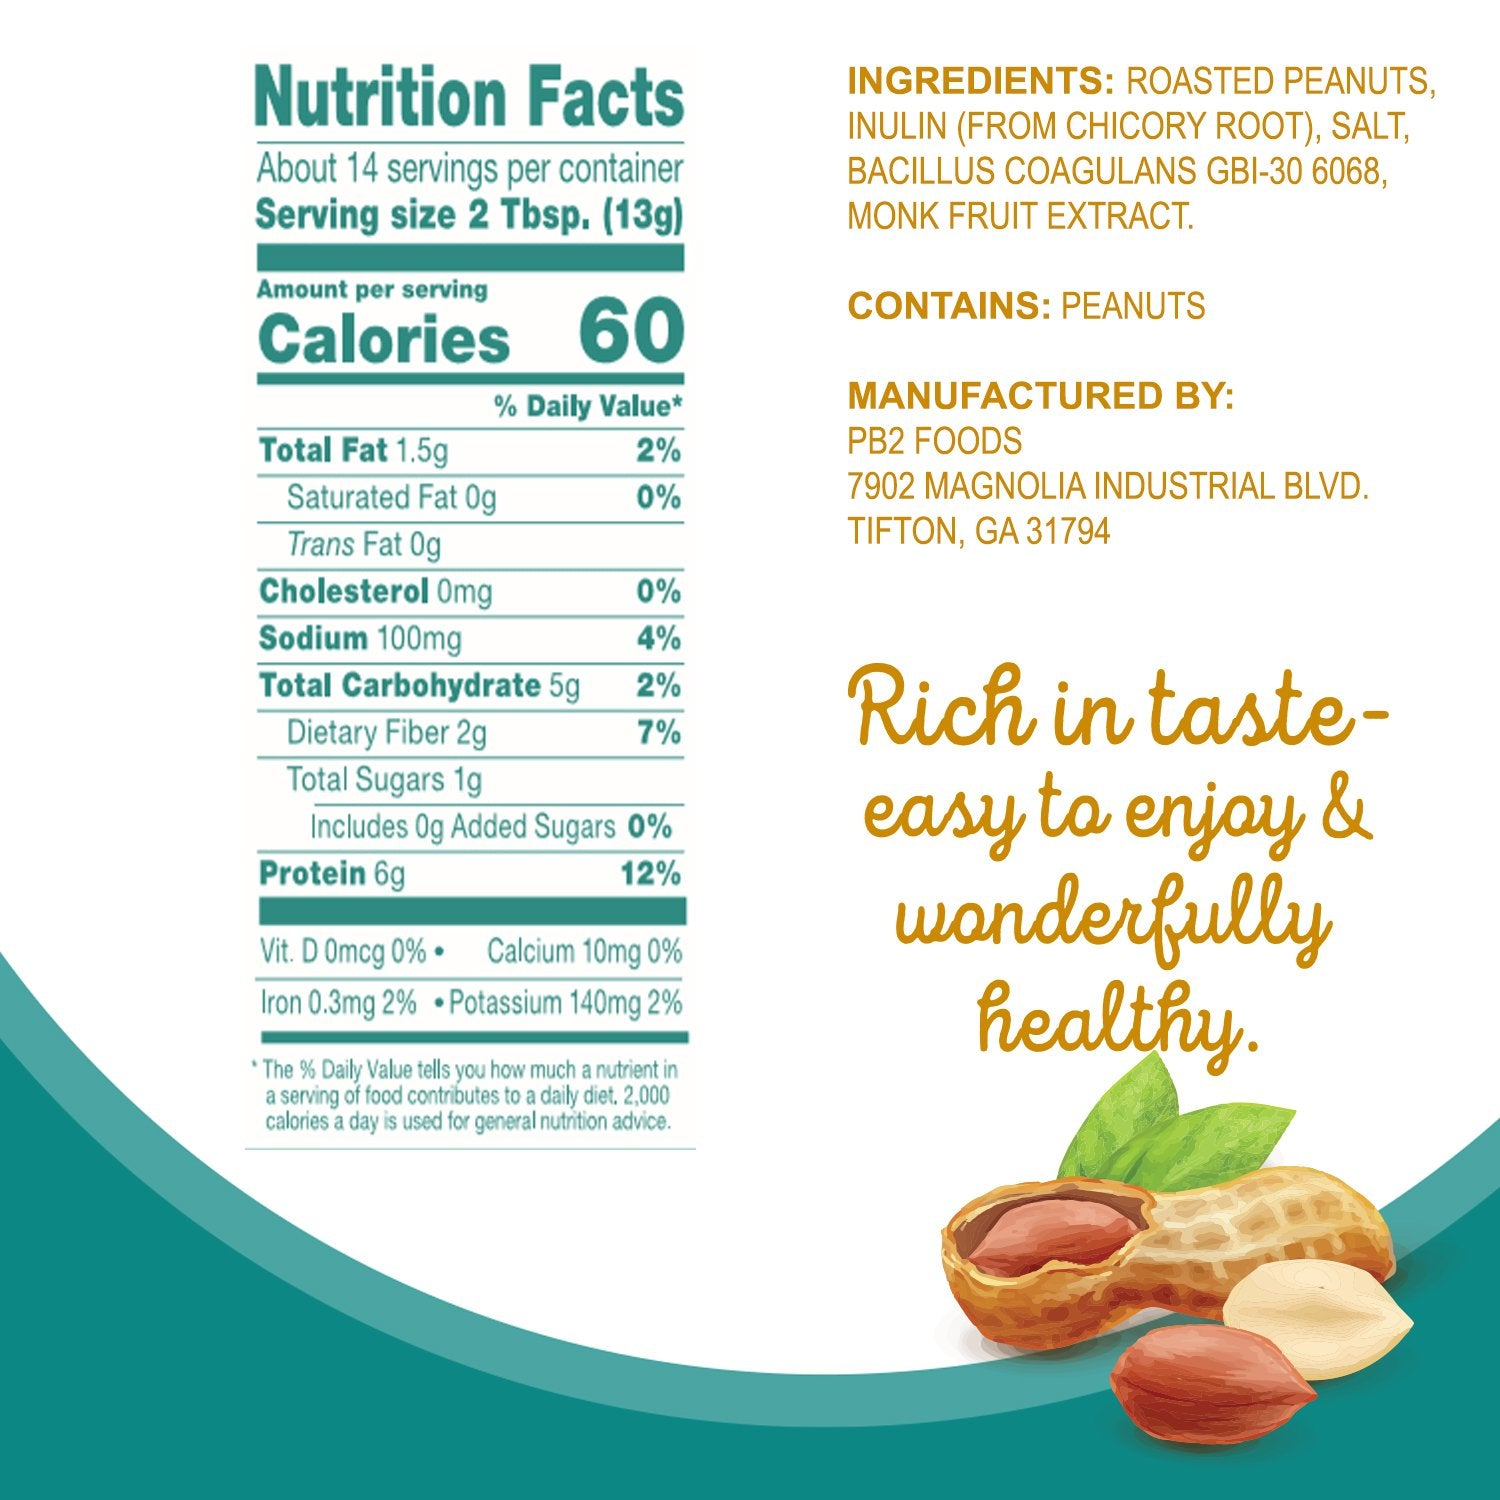 Nutrition Facts For PB2 Powdered Peanut Butter with Pre + Probiotic